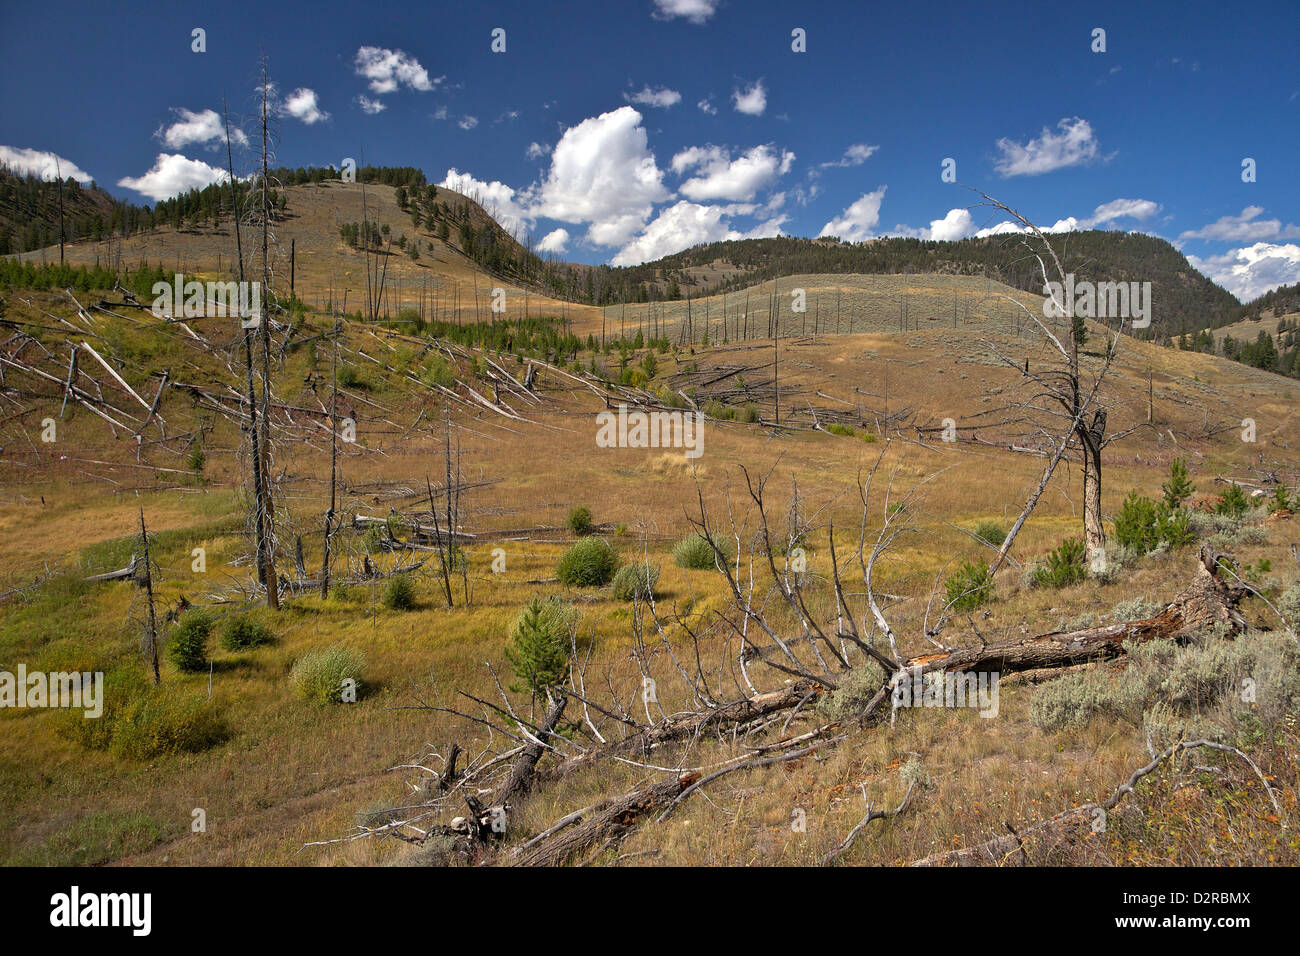 Stämme der Lodgepole Kiefern auf Deer Blacktail Plateau, Yellowstone-Nationalpark, Wyoming, USA Stockbild